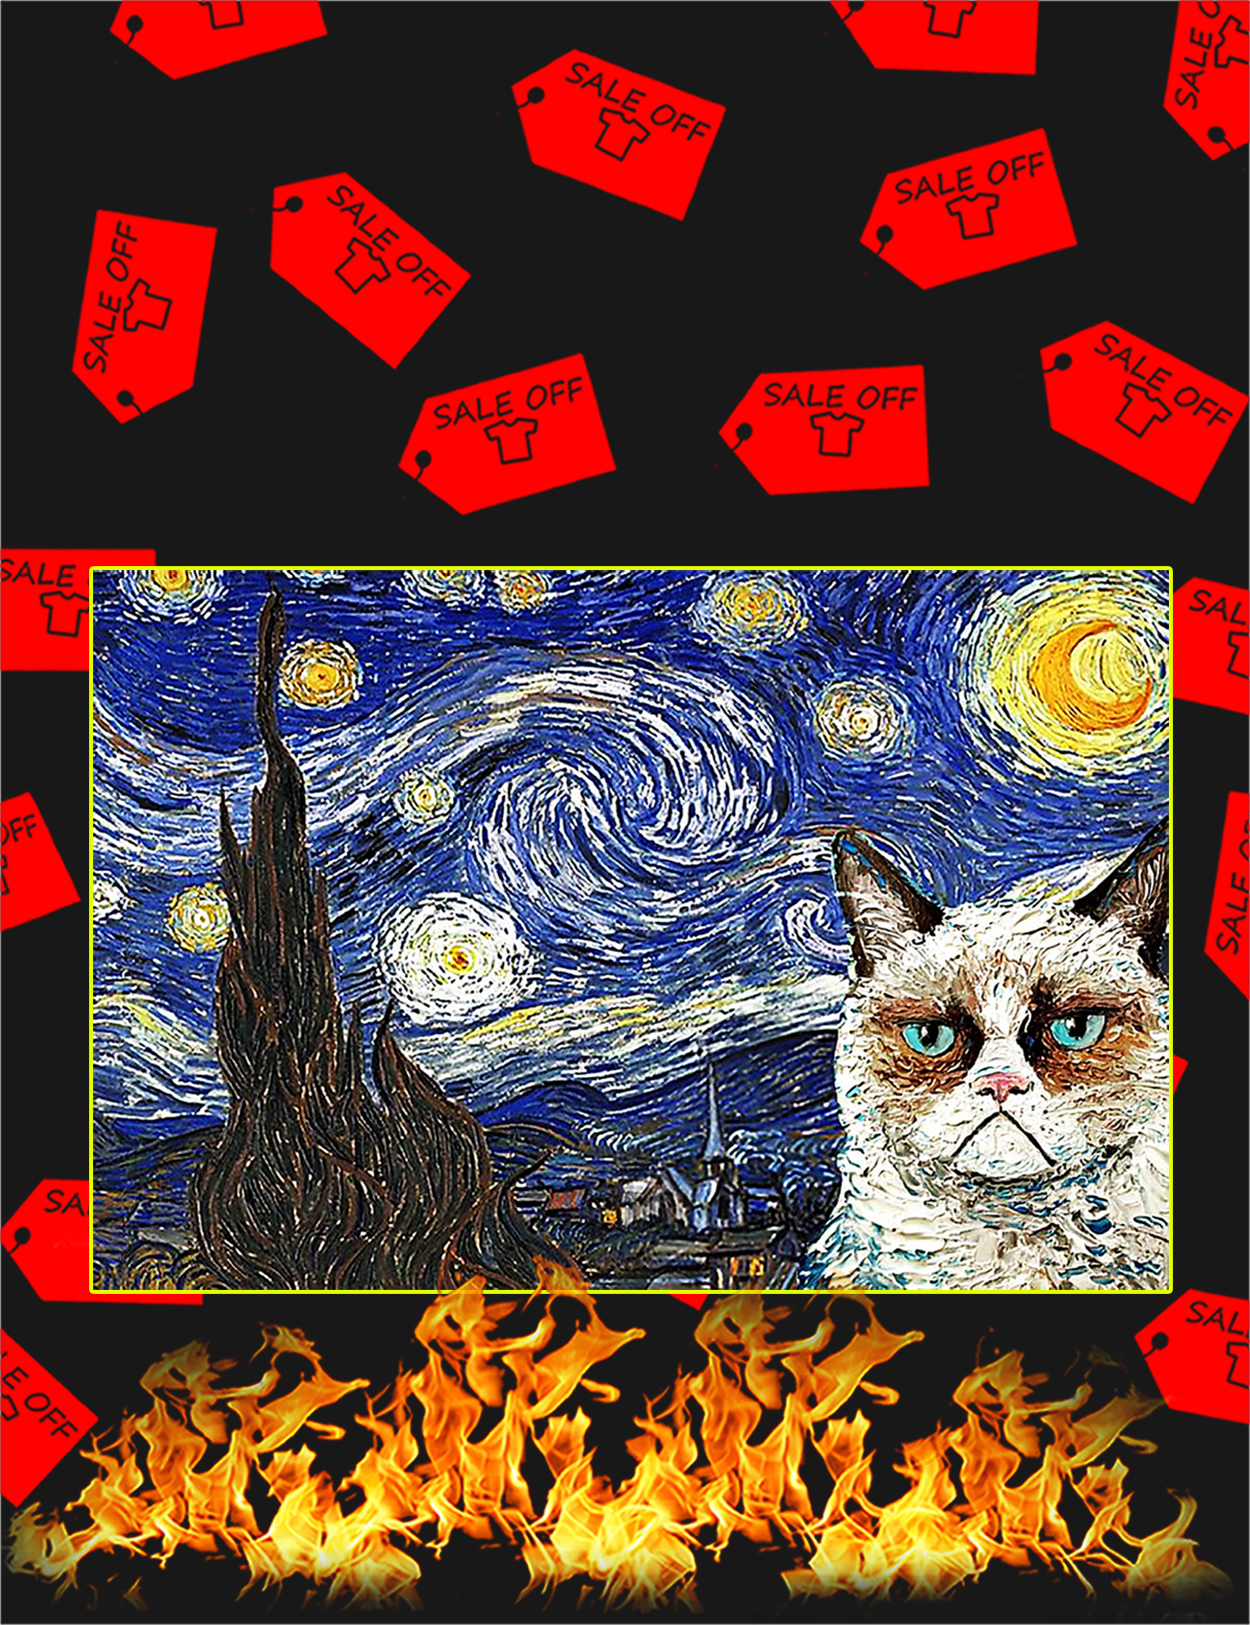 Grumpy cat starry night poster - A2